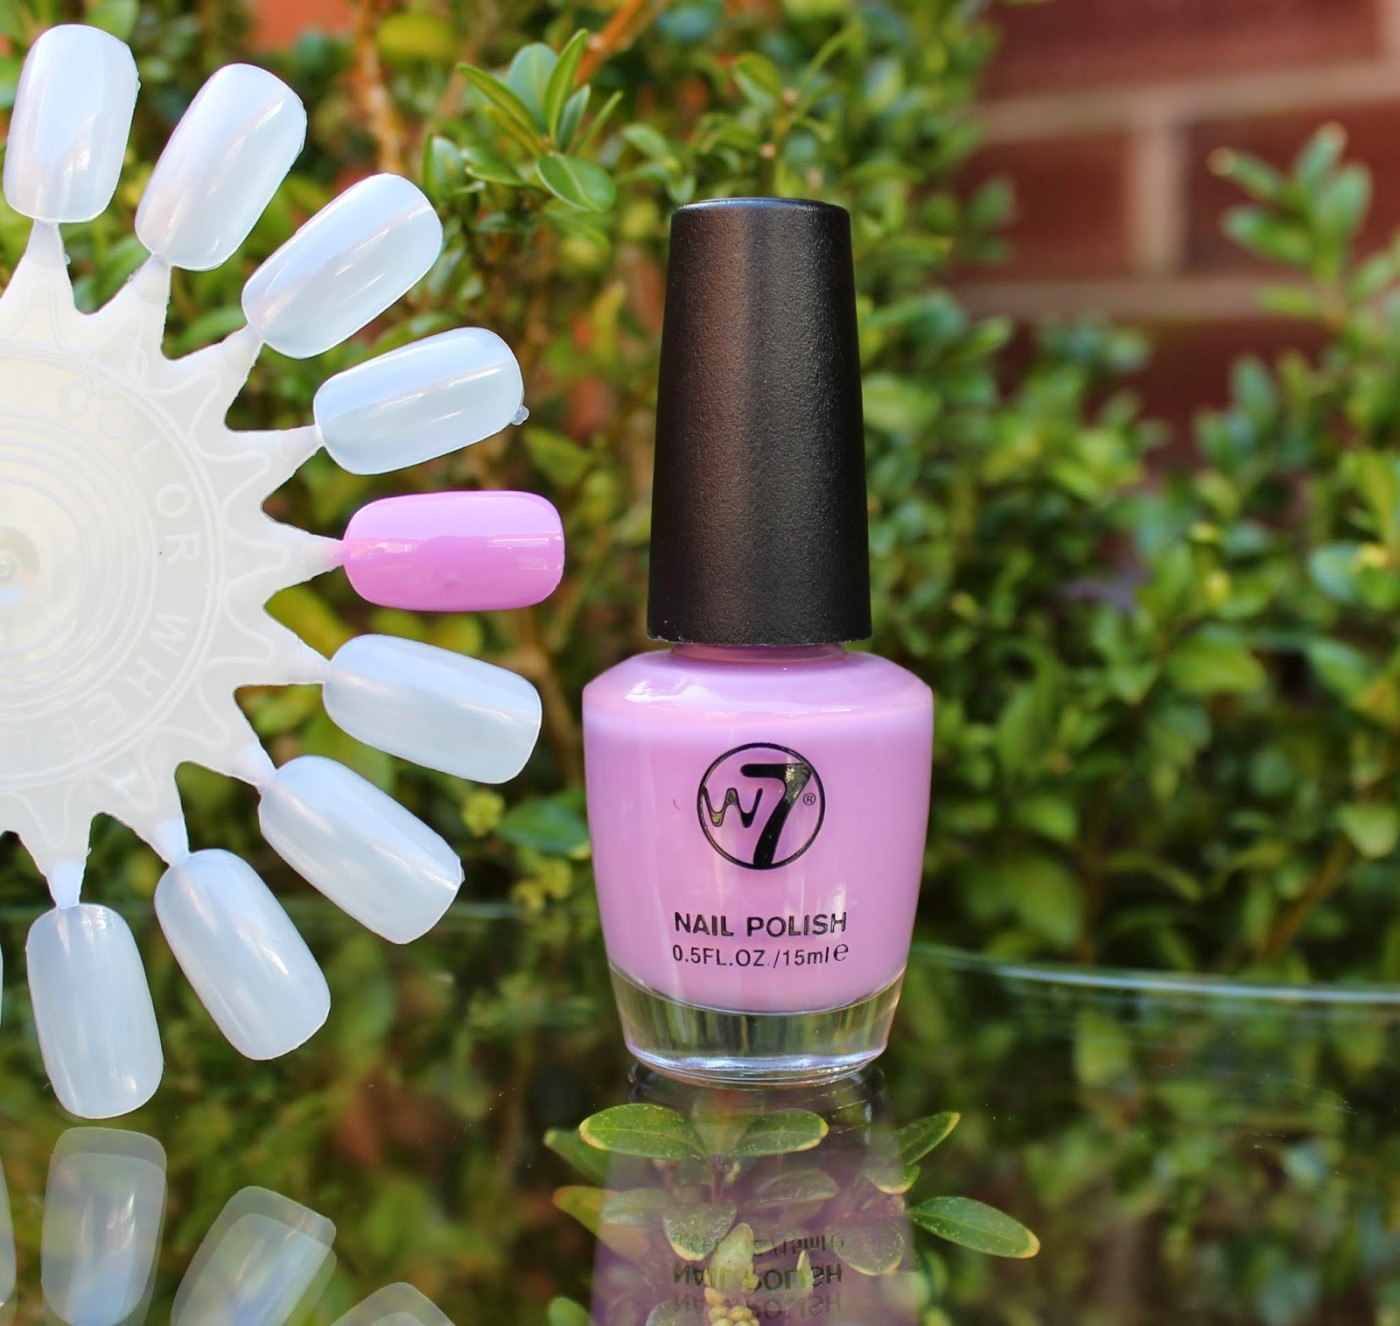 w7, w7 nail polish, spring/summer nails, pastel nails, pastel trend, through chelsea's eyes,